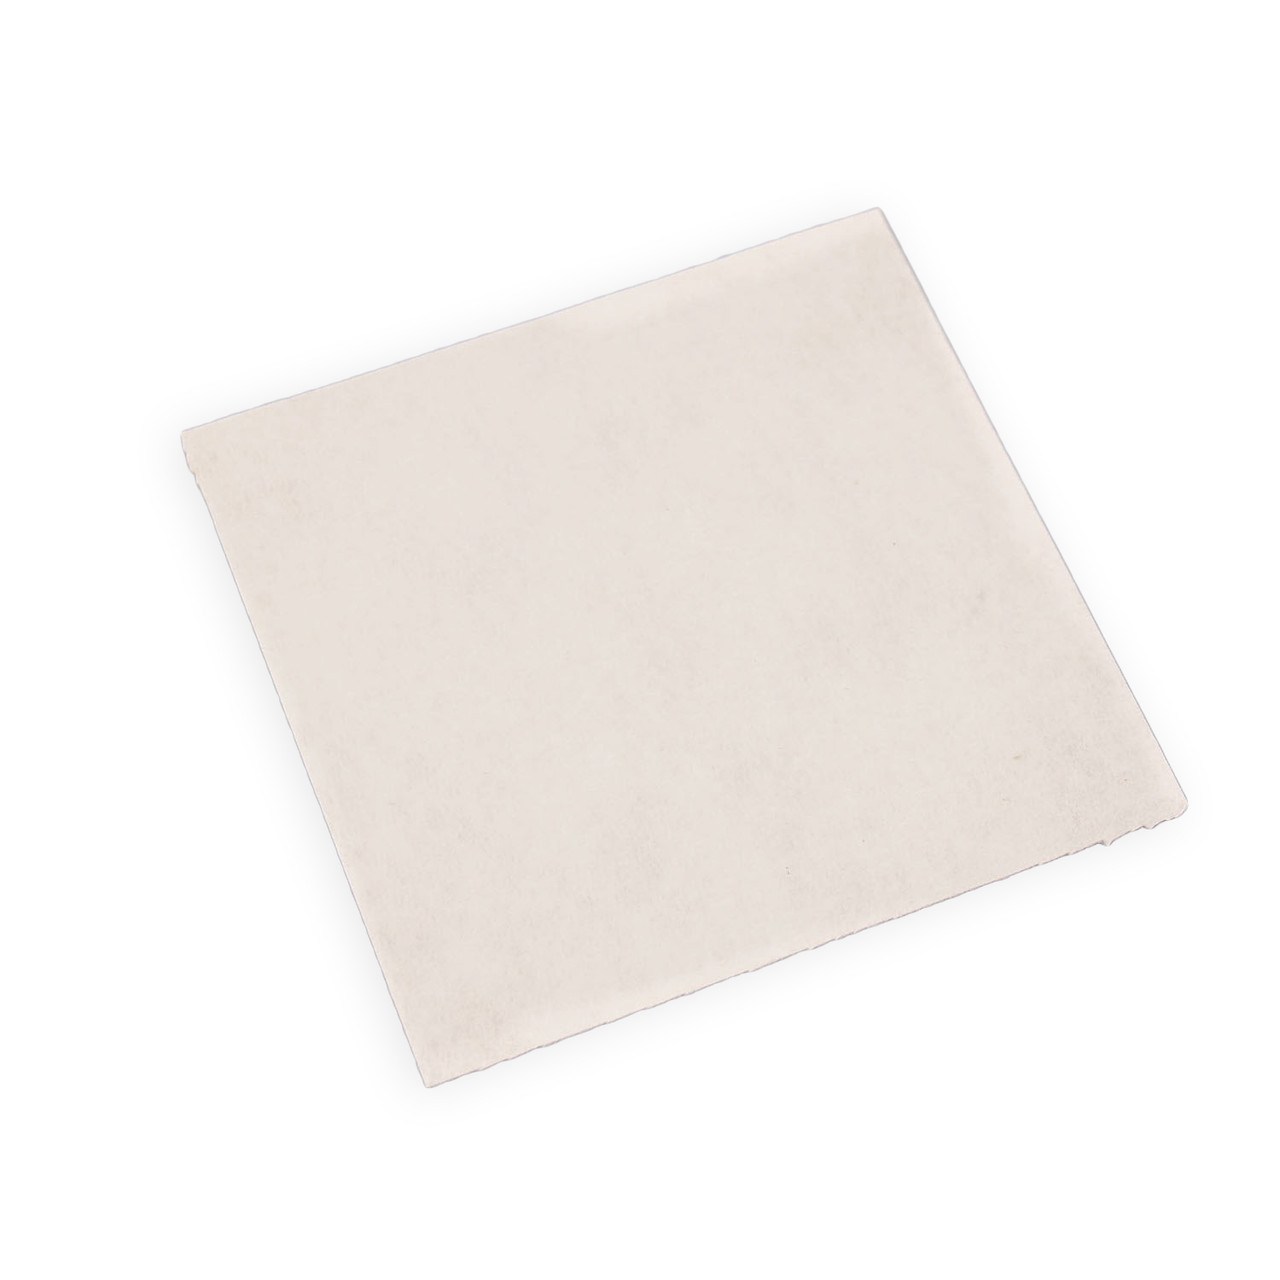 BFE95 Face Mask Insert Material, 5 1/2 in x 40 in